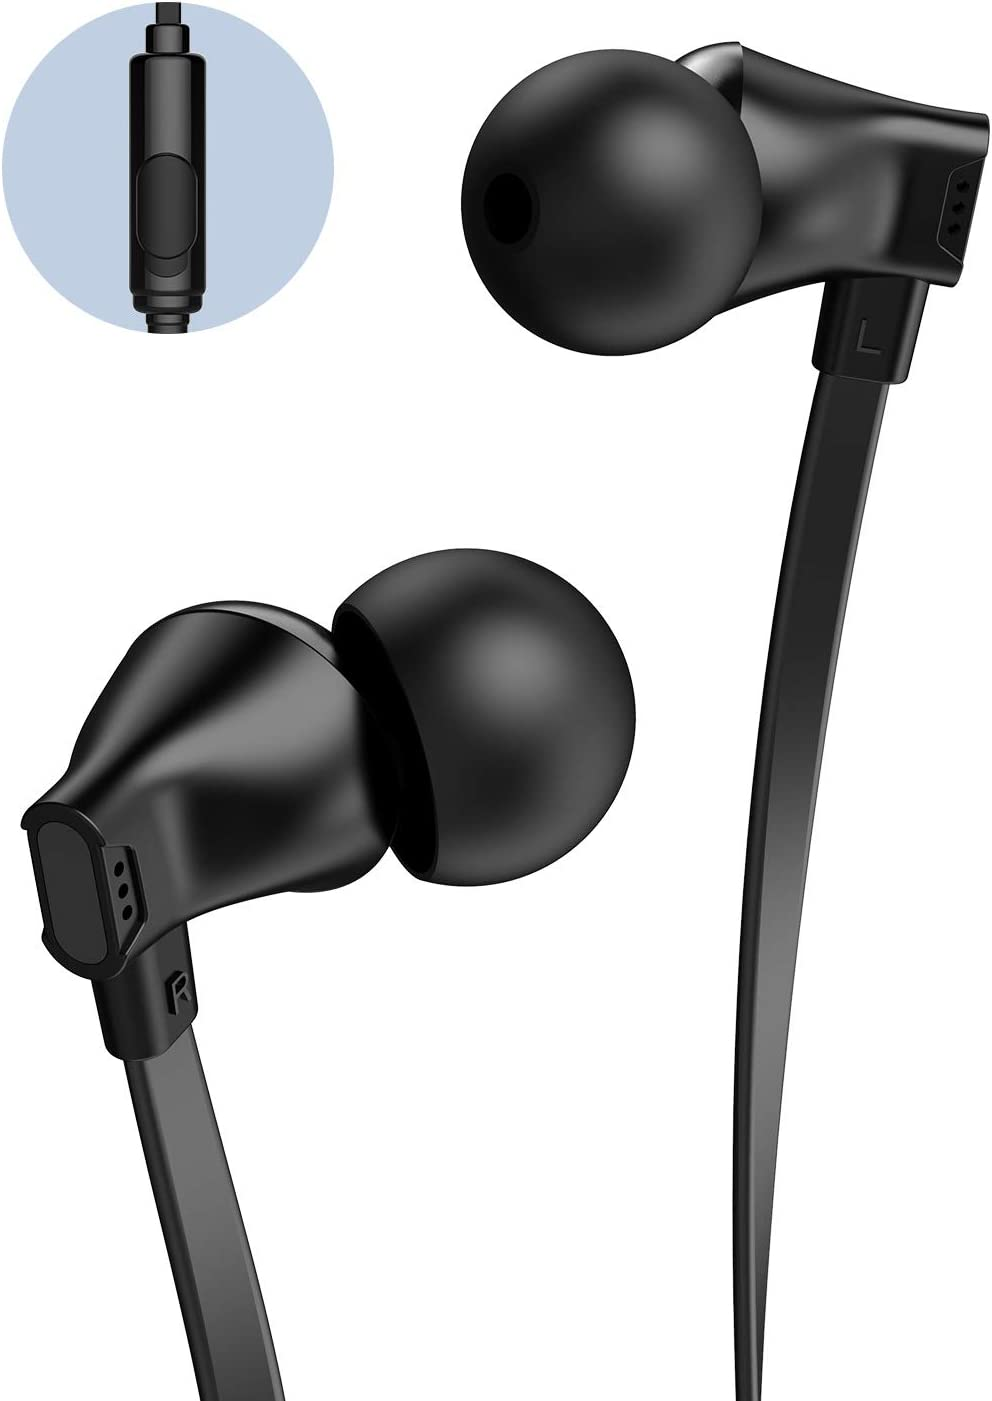 Earbuds with Microphone, Vogek Earphones Noise Isolating, in-Ear Headphones with HiFi Stereo & Powerful Bass 3.5mm Interface Compatible with iPhone and Android Smartphones, iPod, iPad, MP3 Player